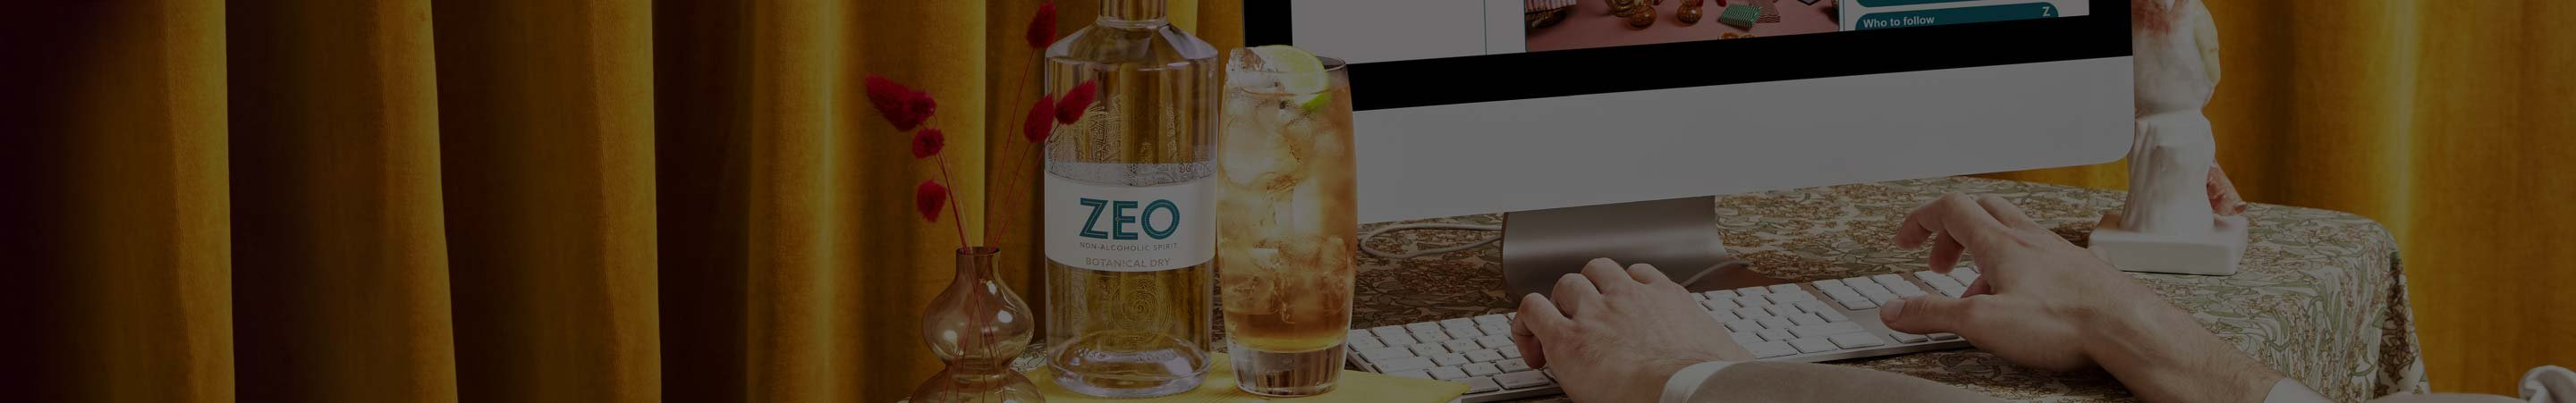 Zeo None Alcoholic Drink